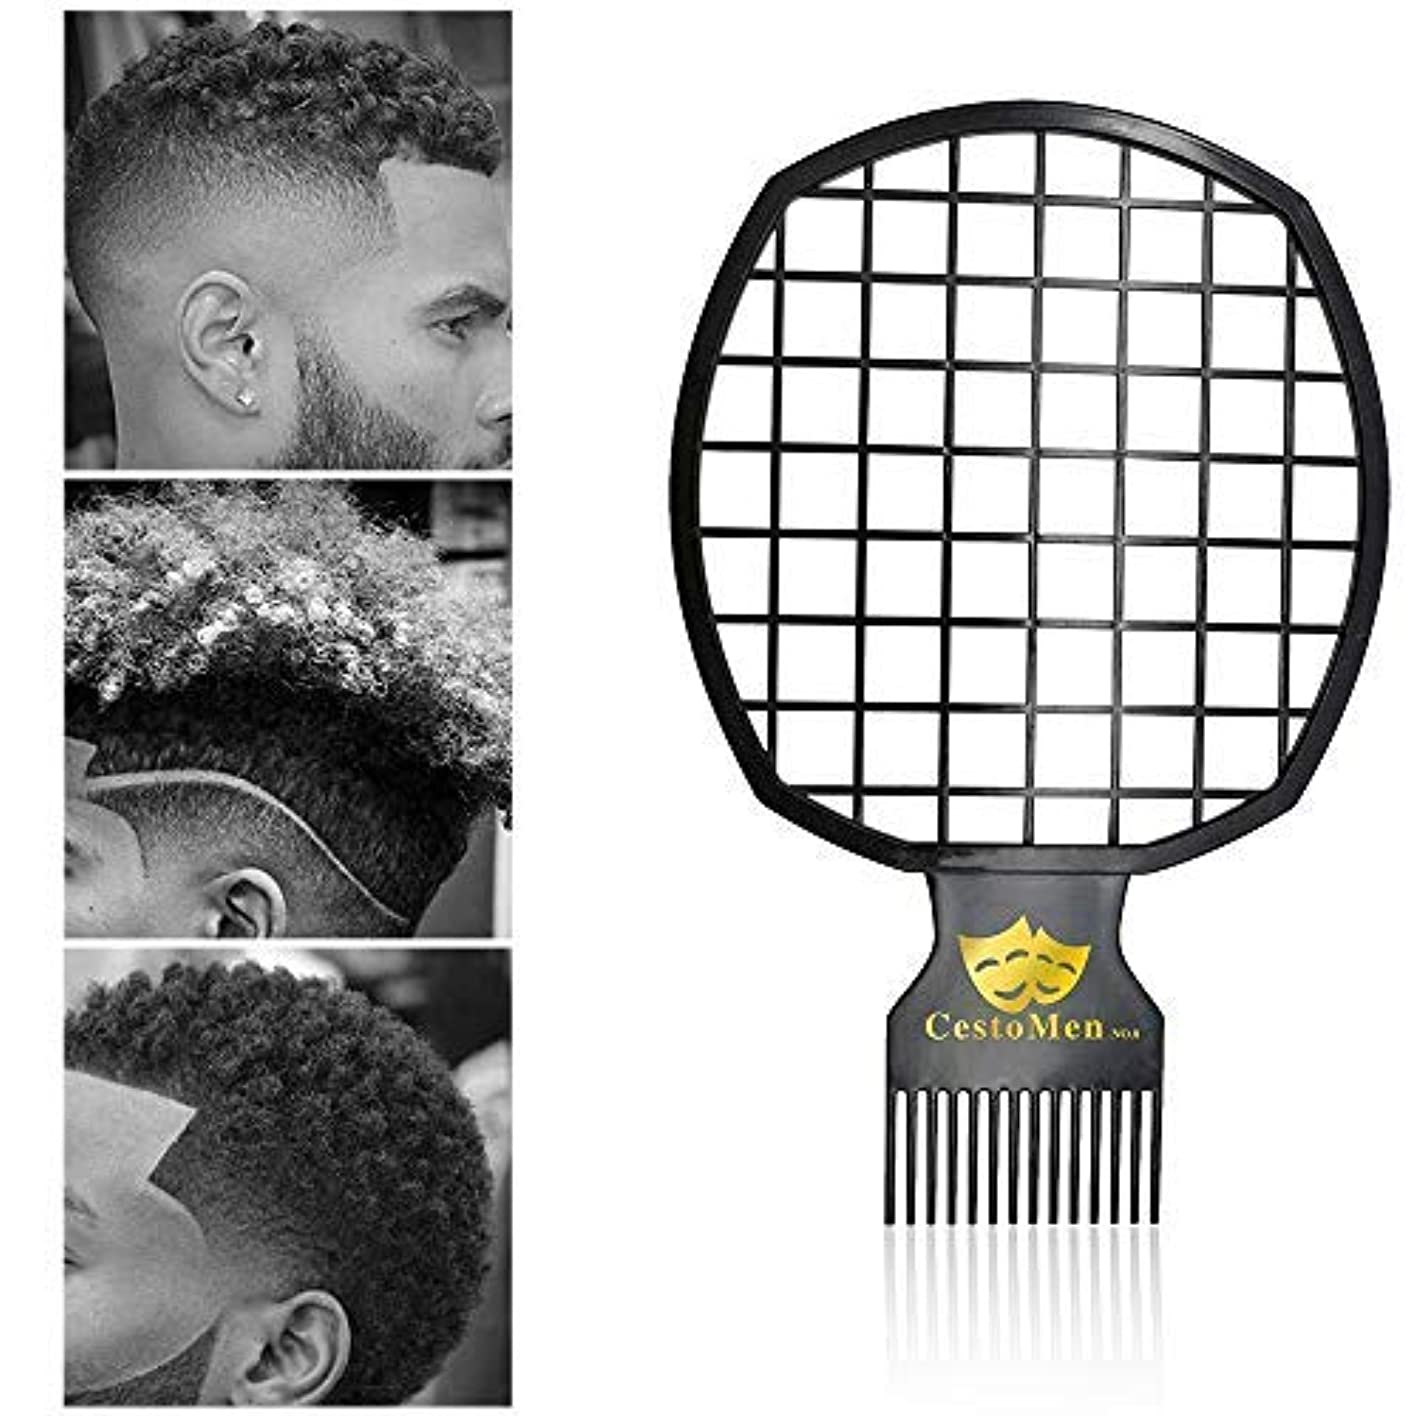 の配列動かす仮説Afro Twist Comb Portable Two-In-One Hair Comb for Natural Twists Curls Coils Dreads Hair Styling Tool for Black...